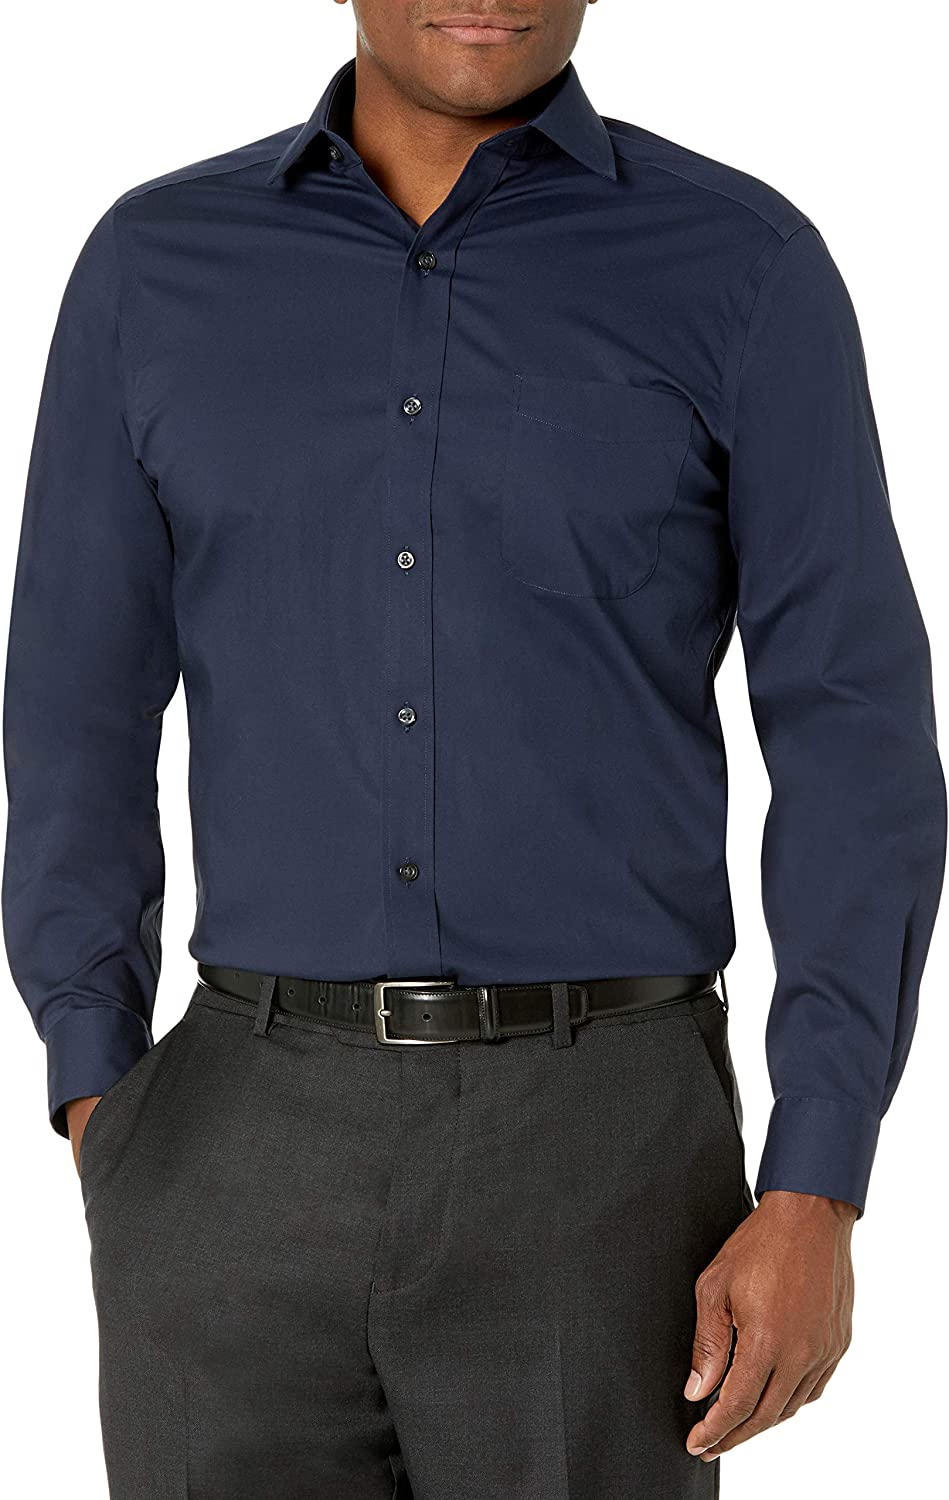 sale List price Buttoned Down Men's Tailored Fit Sup Poplin Dress Stretch Shirt